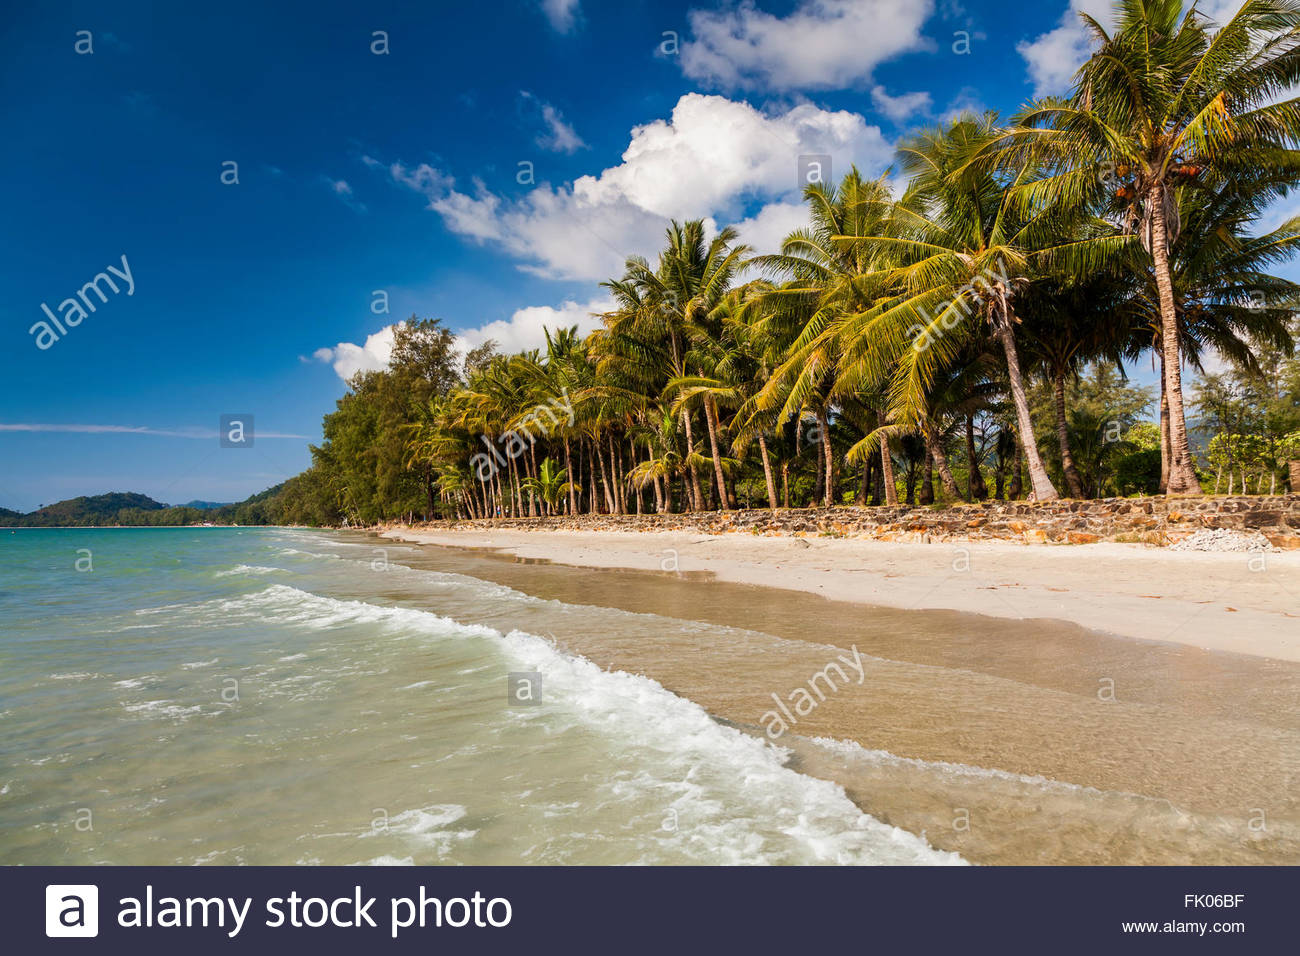 Tropical landscape with coconut palms and sandy beach. Koh Chang. Thailand. - Stock Image